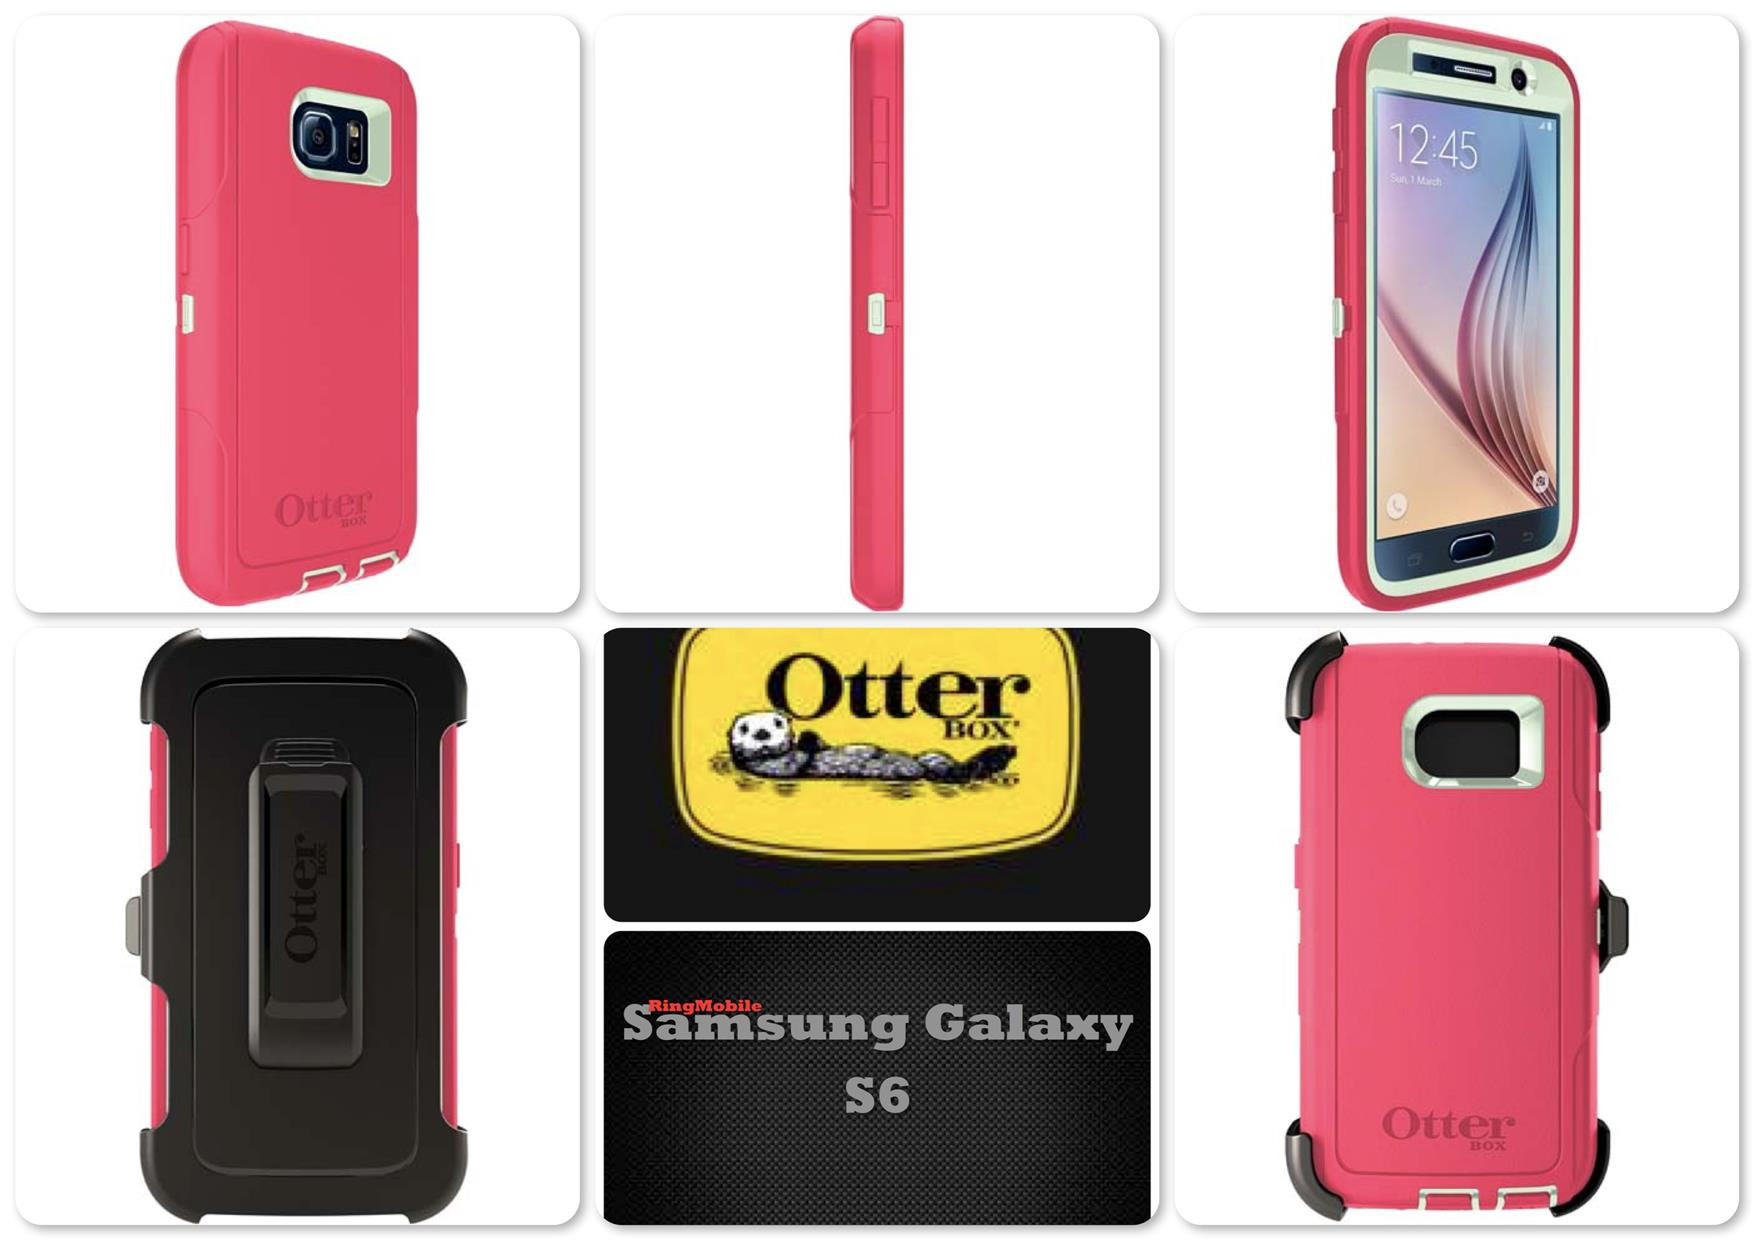 Bdotcom = Samsung Galaxy S6 Otterbox Defender Series Melon Pop